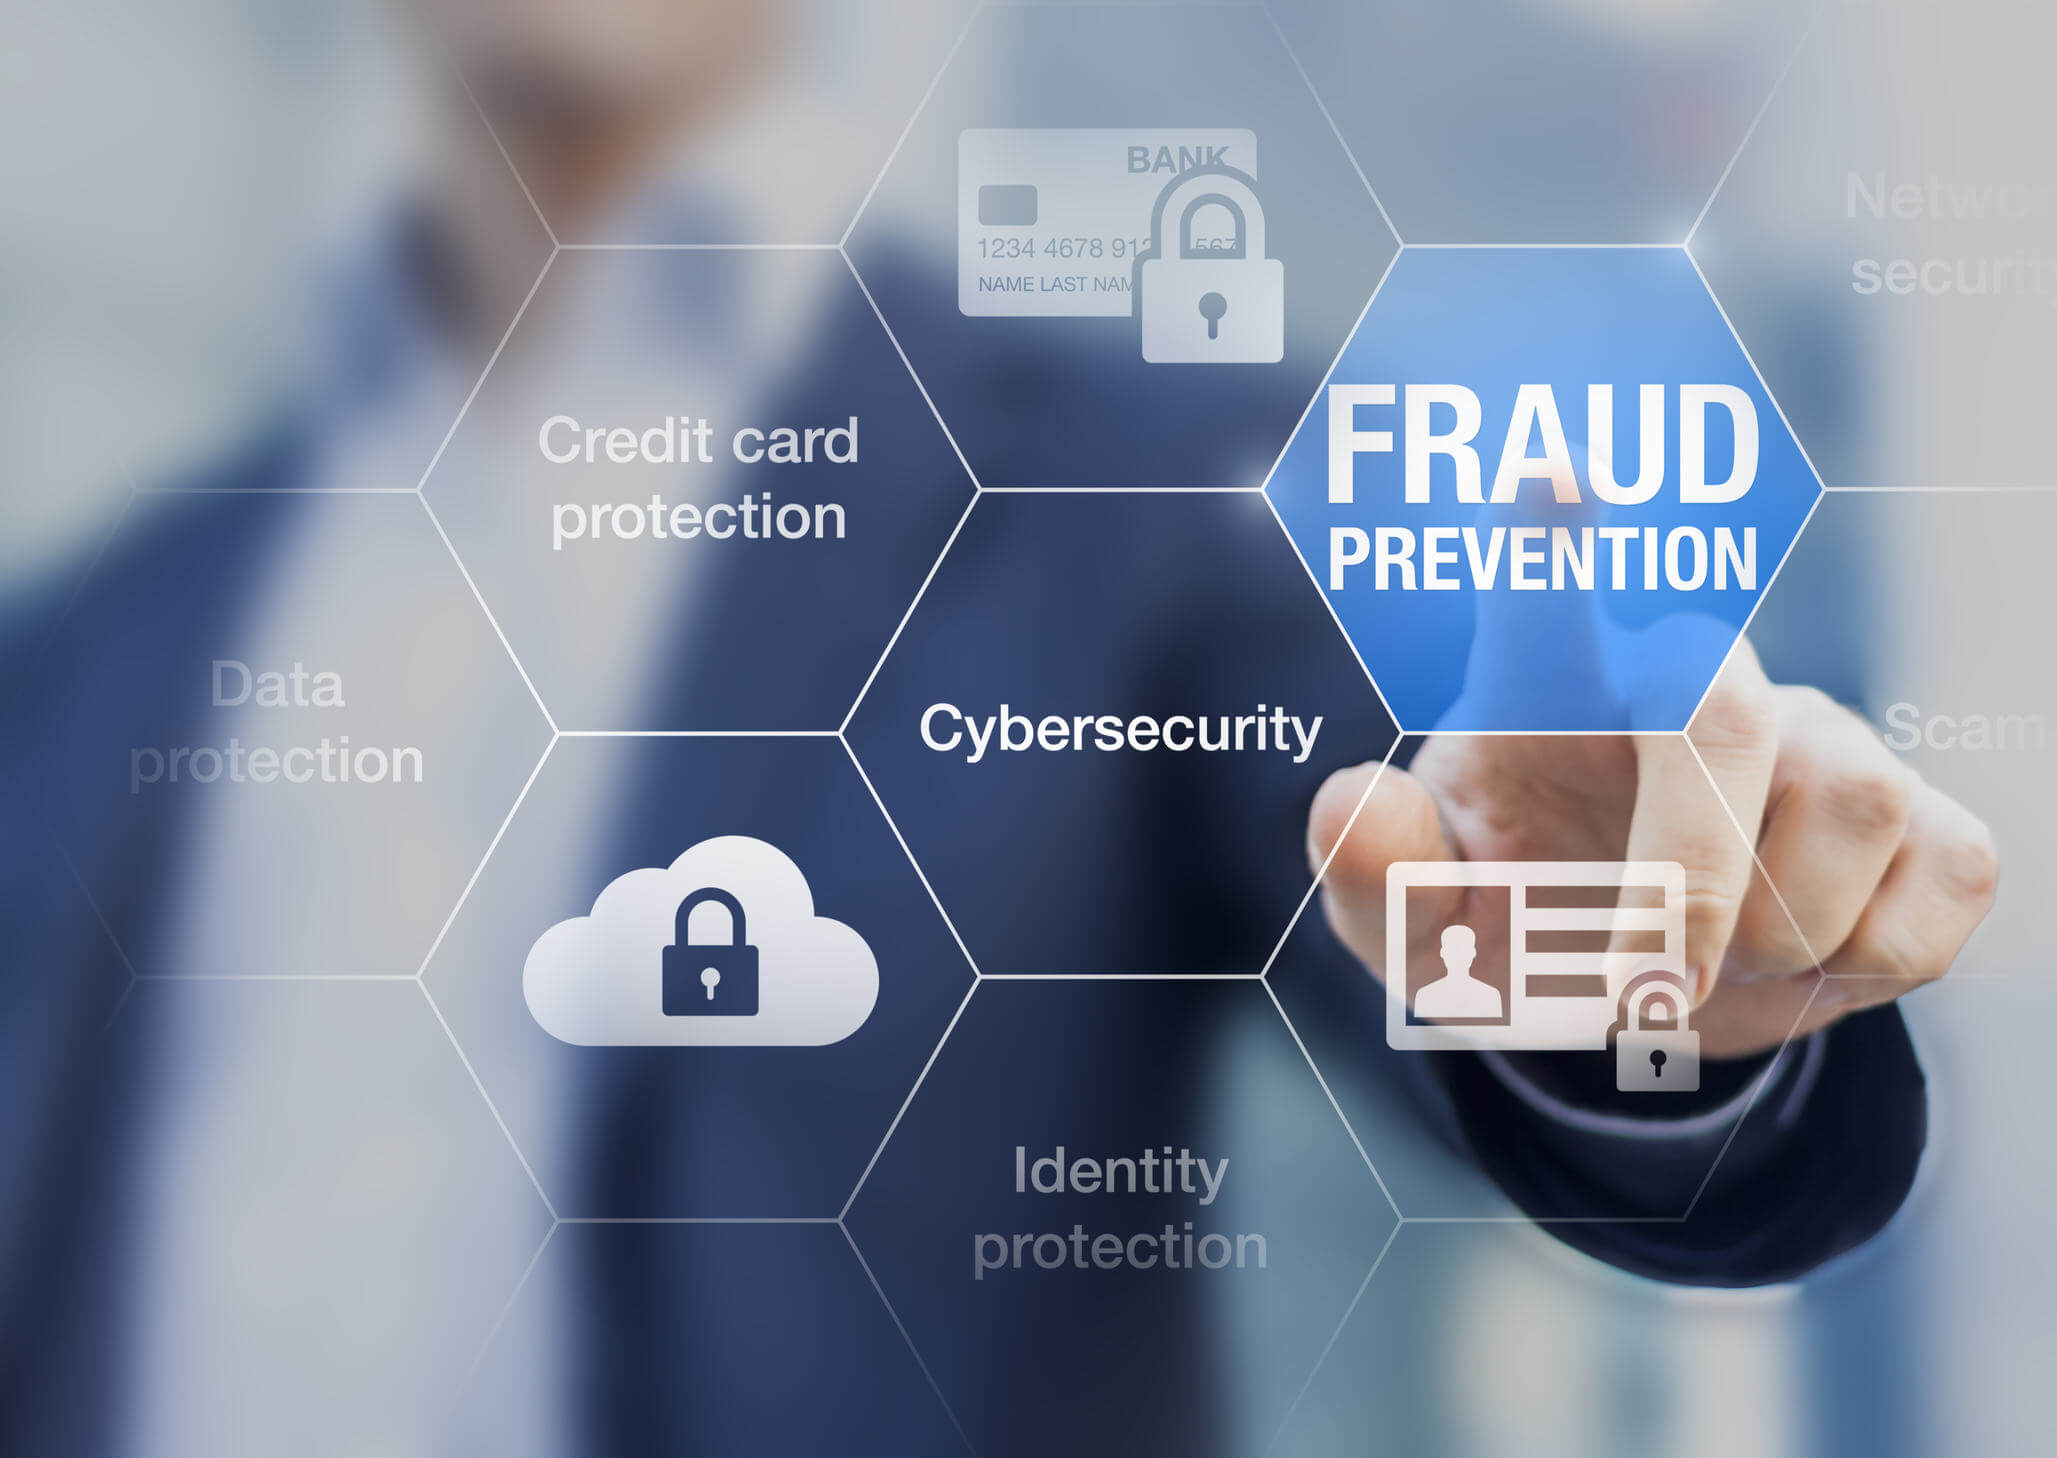 Information Security, Fraud Prevention, IT Security, Blough Tech, Data Management, Document Scanning